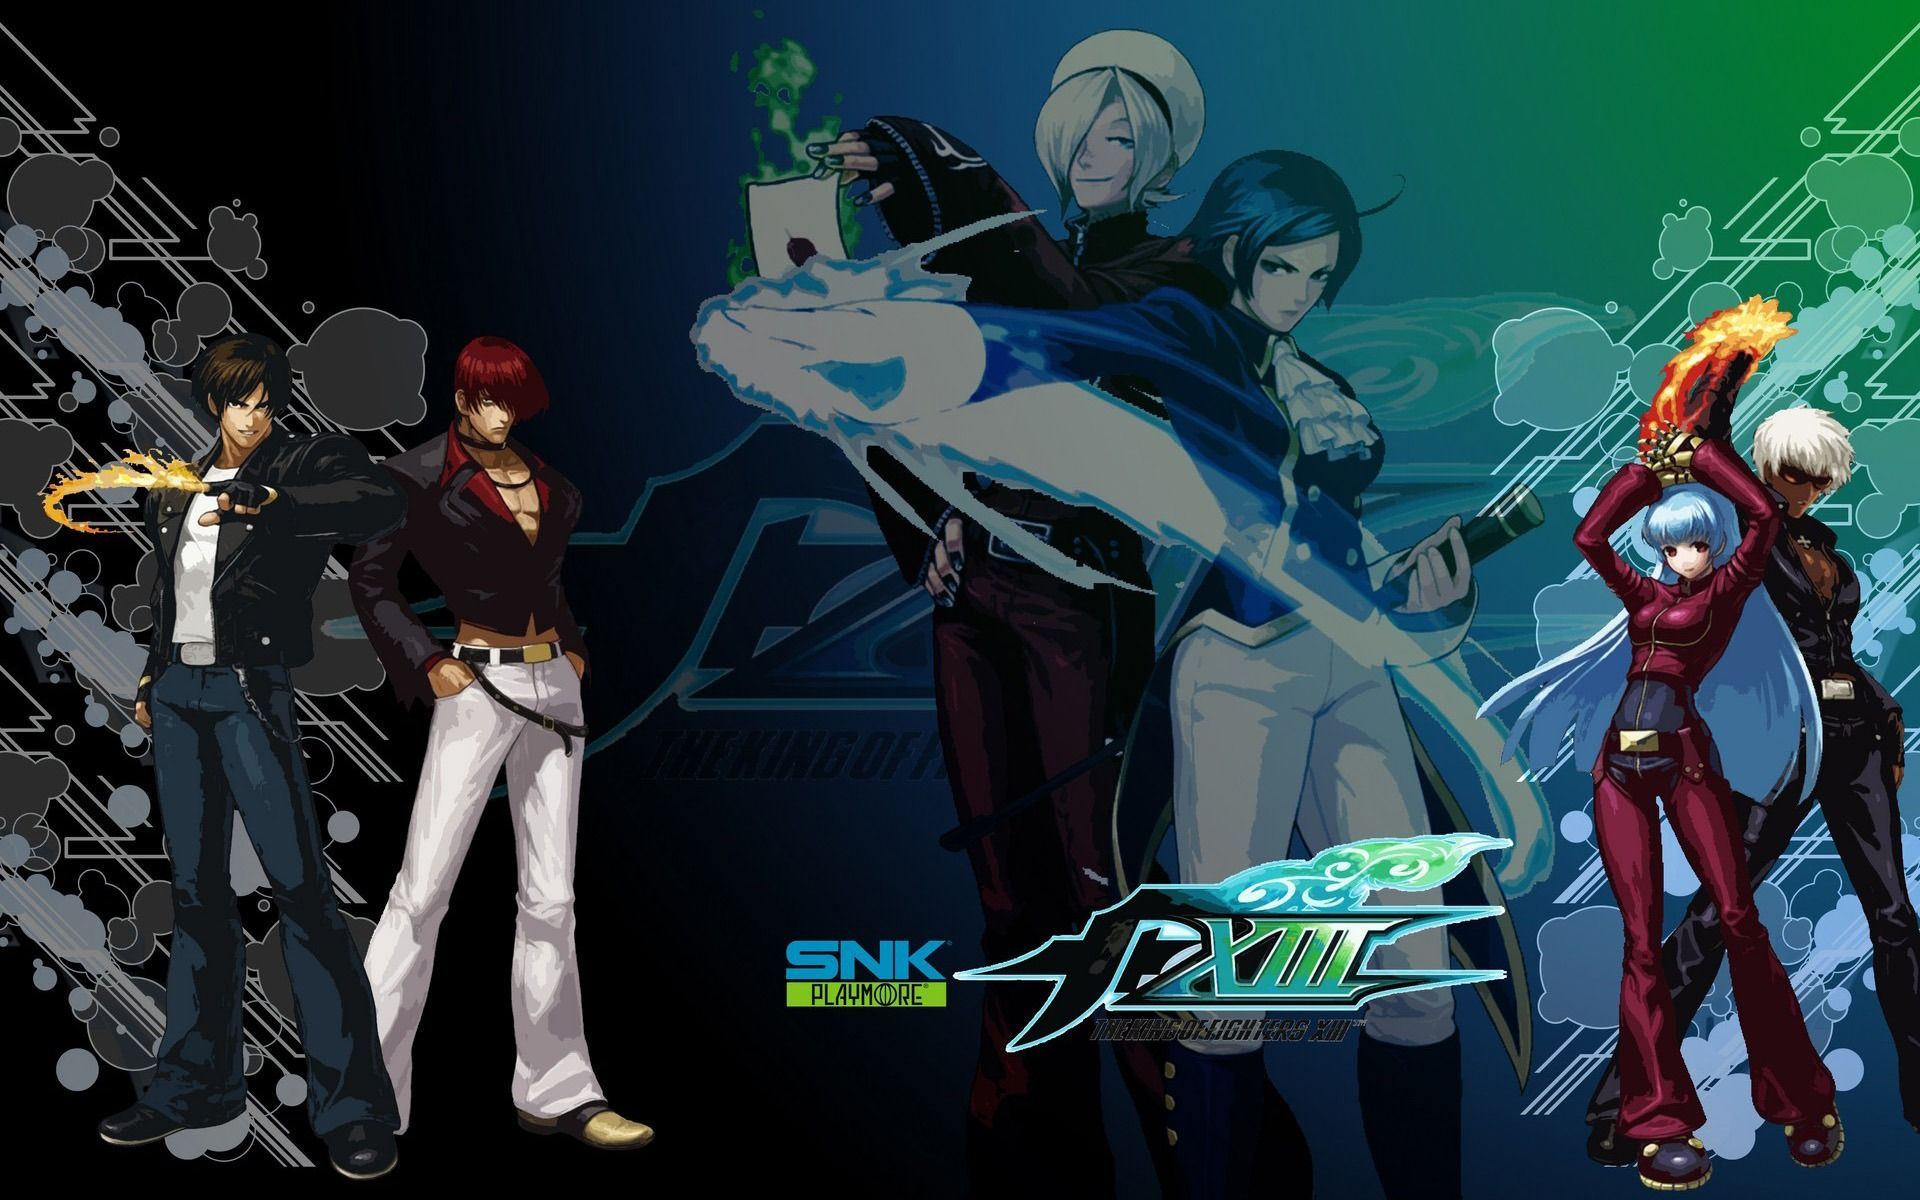 The King Of Fighters na vida real fica muito mais daora | Geek Project